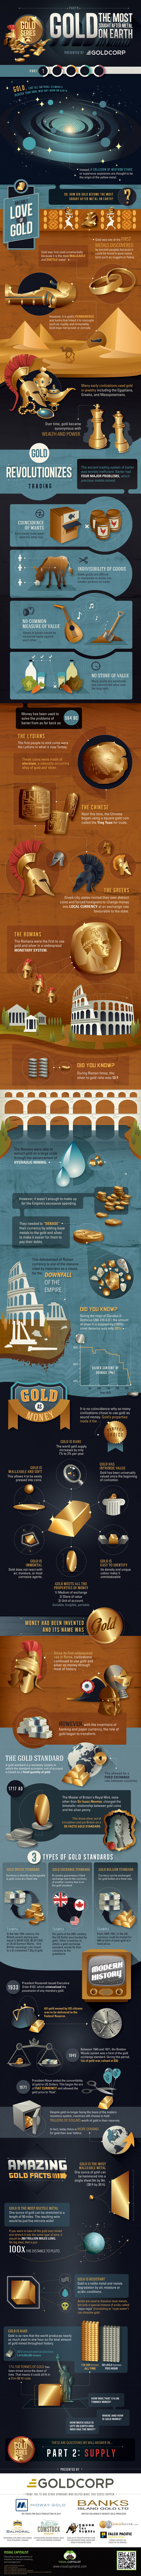 Gold - The Most Sought After Metal On Earth